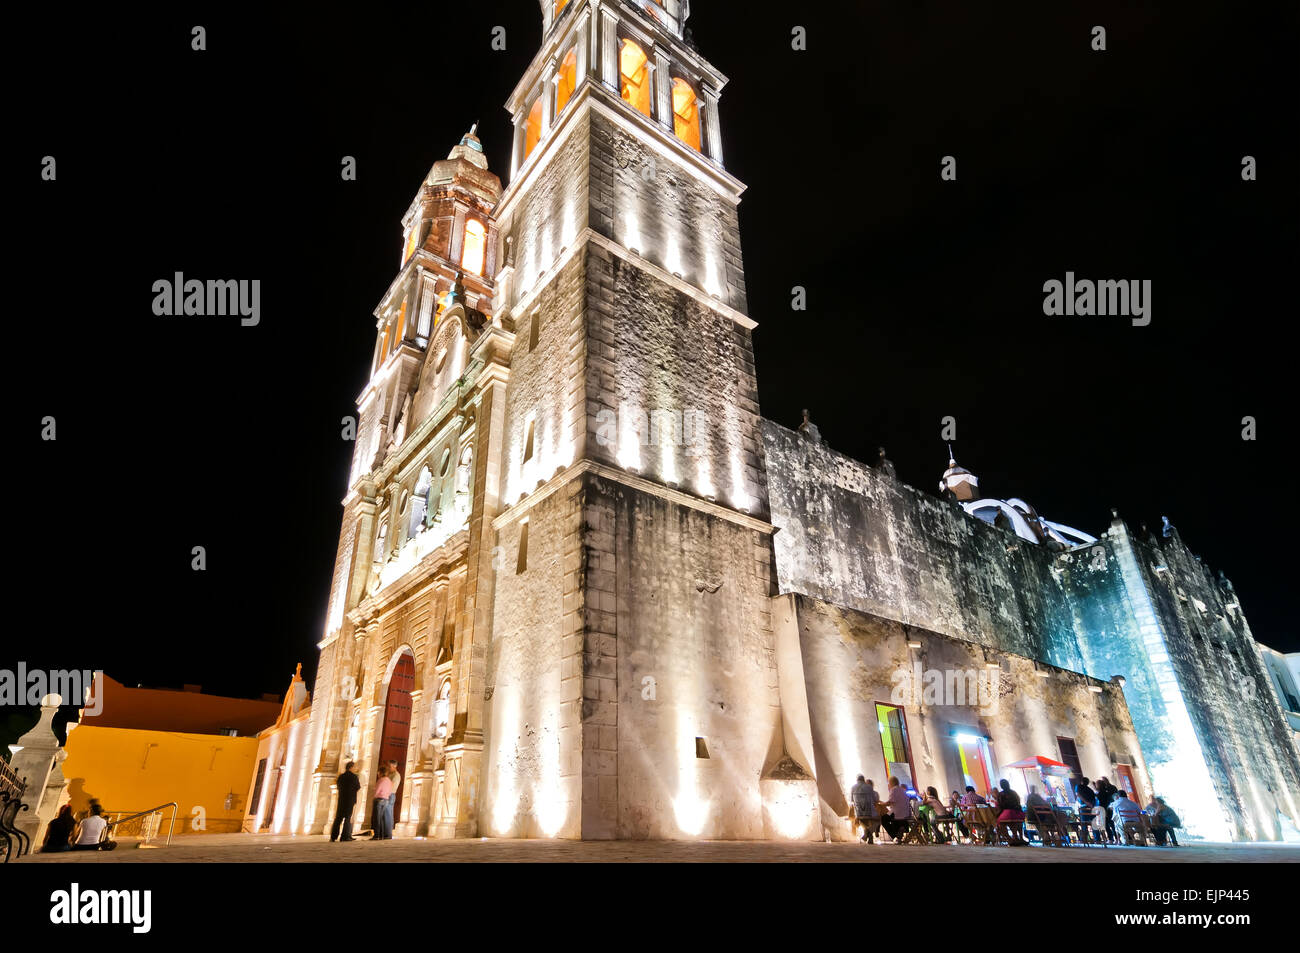 night view of main square and Cathedral in Campeche, Mexico. Stock Photo